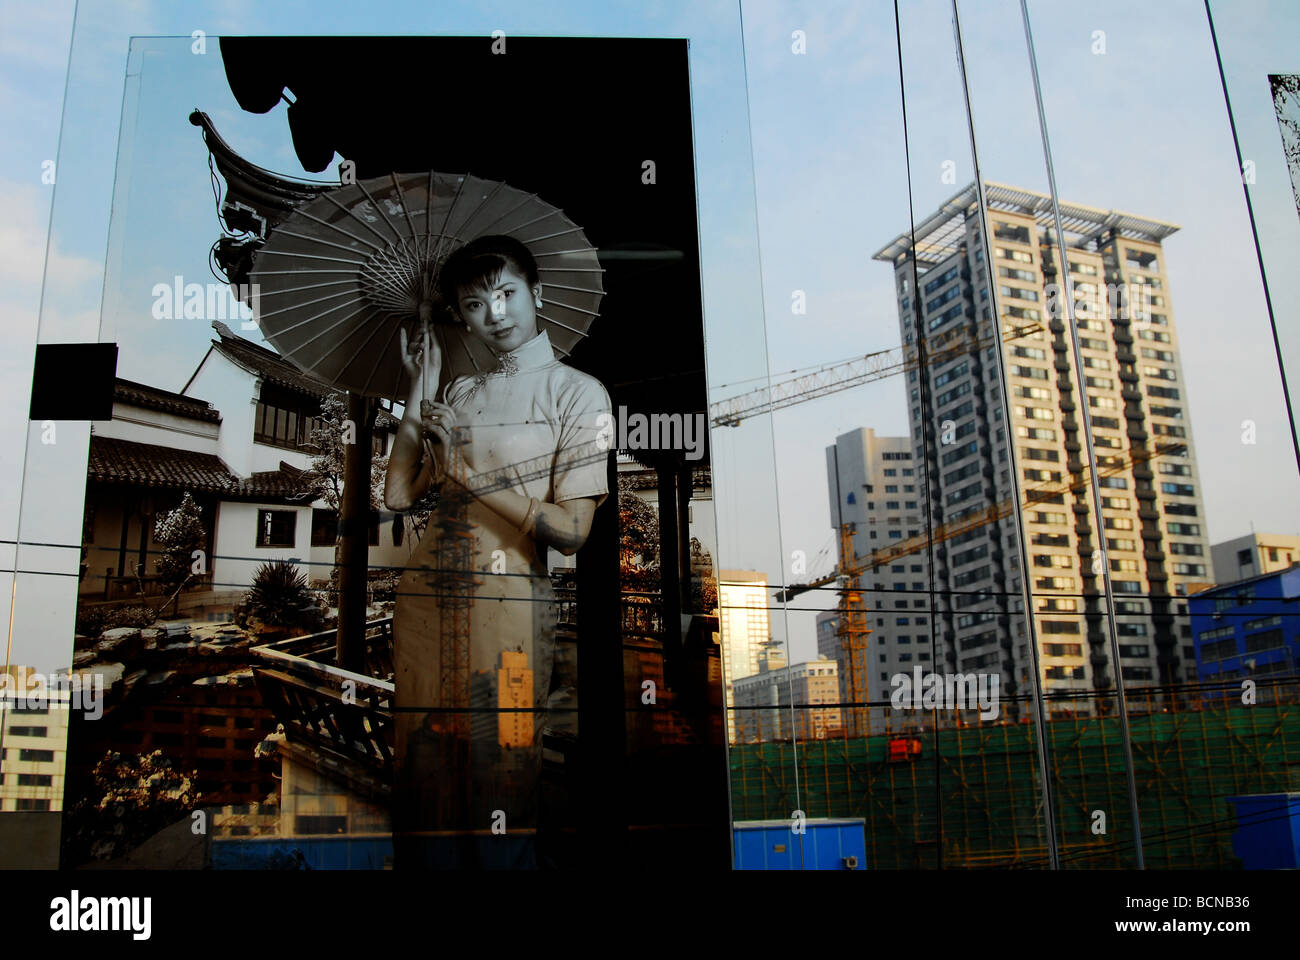 Black and white photograph of young woman in traditional Qipao against modern highrises, Shanghai, China - Stock Image